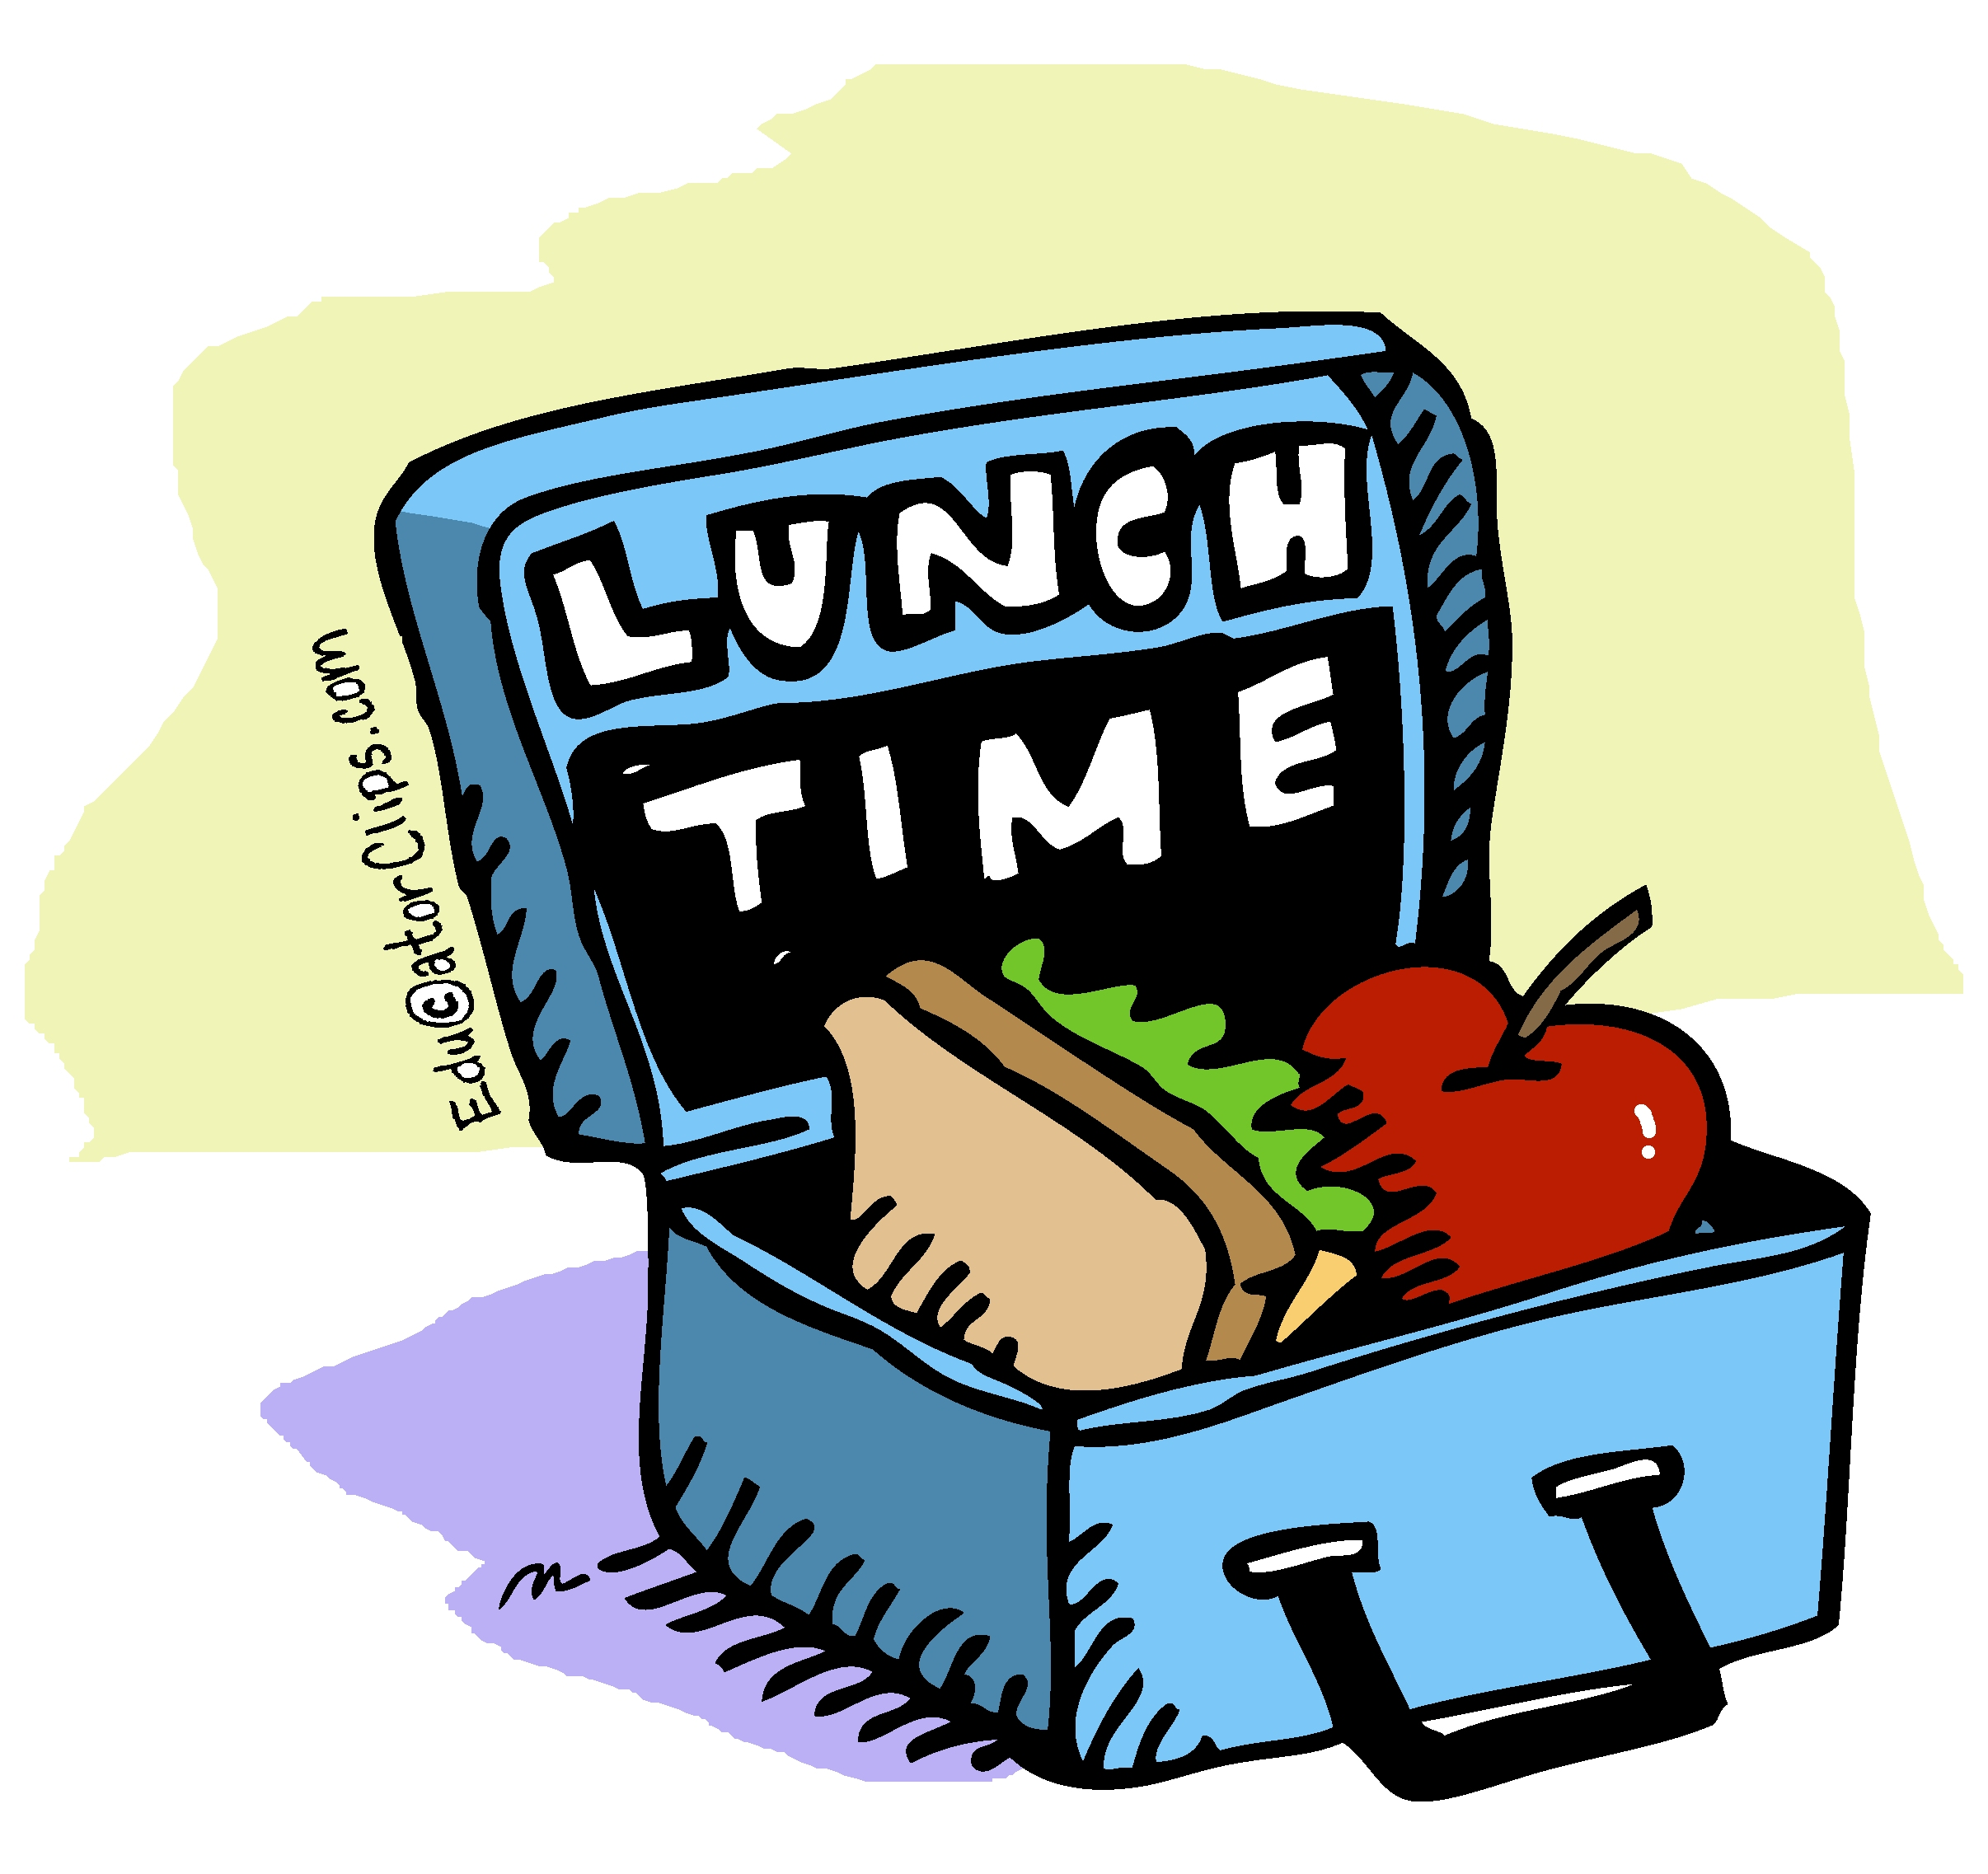 Lunch clipart lunchtime, Lunch lunchtime Transparent FREE.